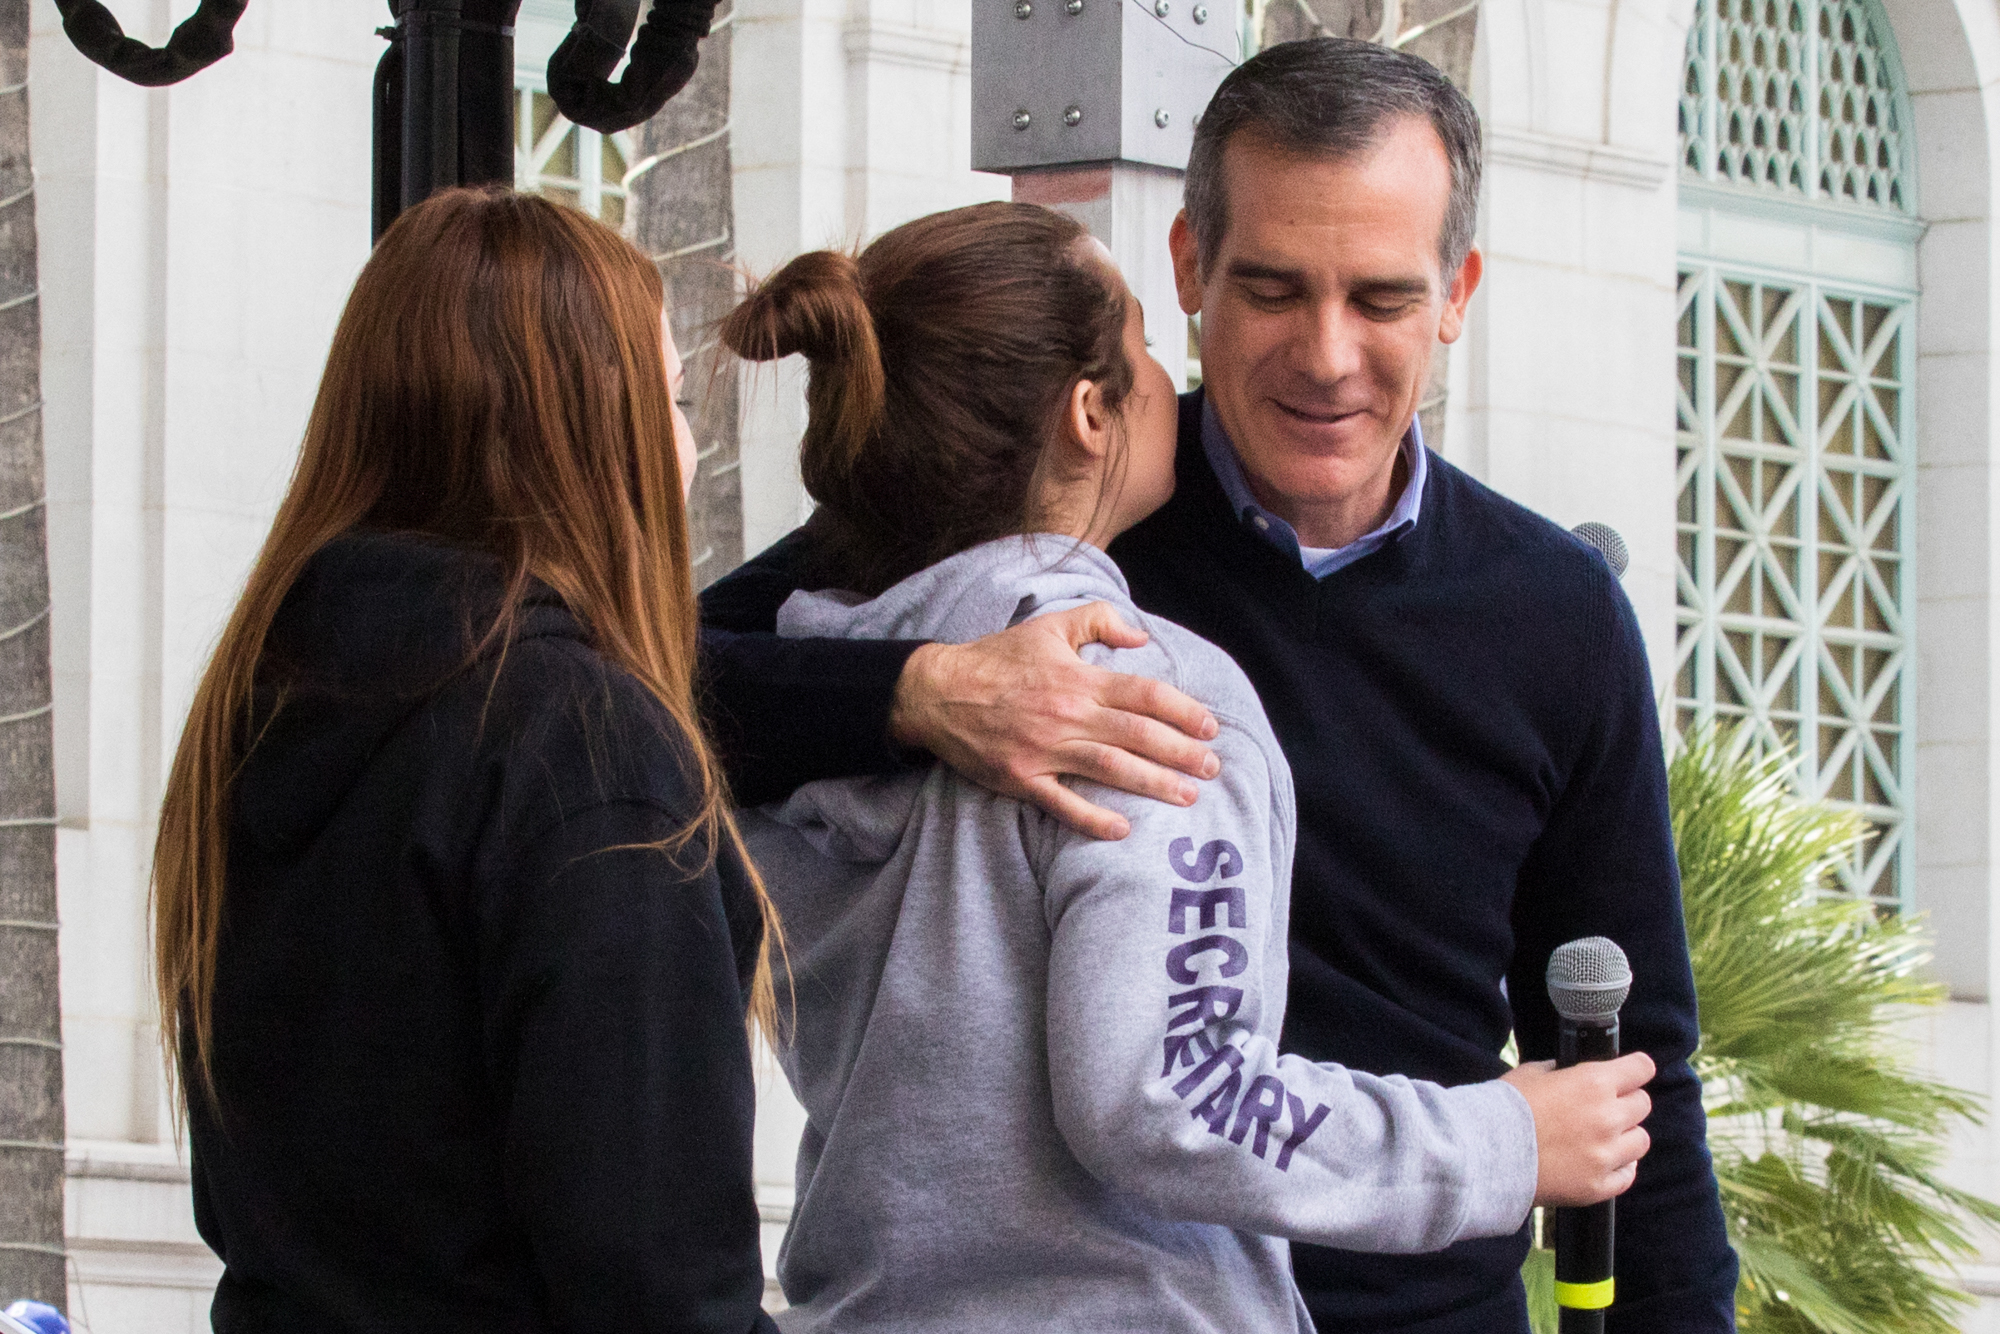 Los Angeles Mayor Eric Garcetti embraces 2 of the student speakers at the March For Our Lives protest on March 24, 2018 in Los Angeles, California. (Zane Meyer-Thornton/Corsair Photo)